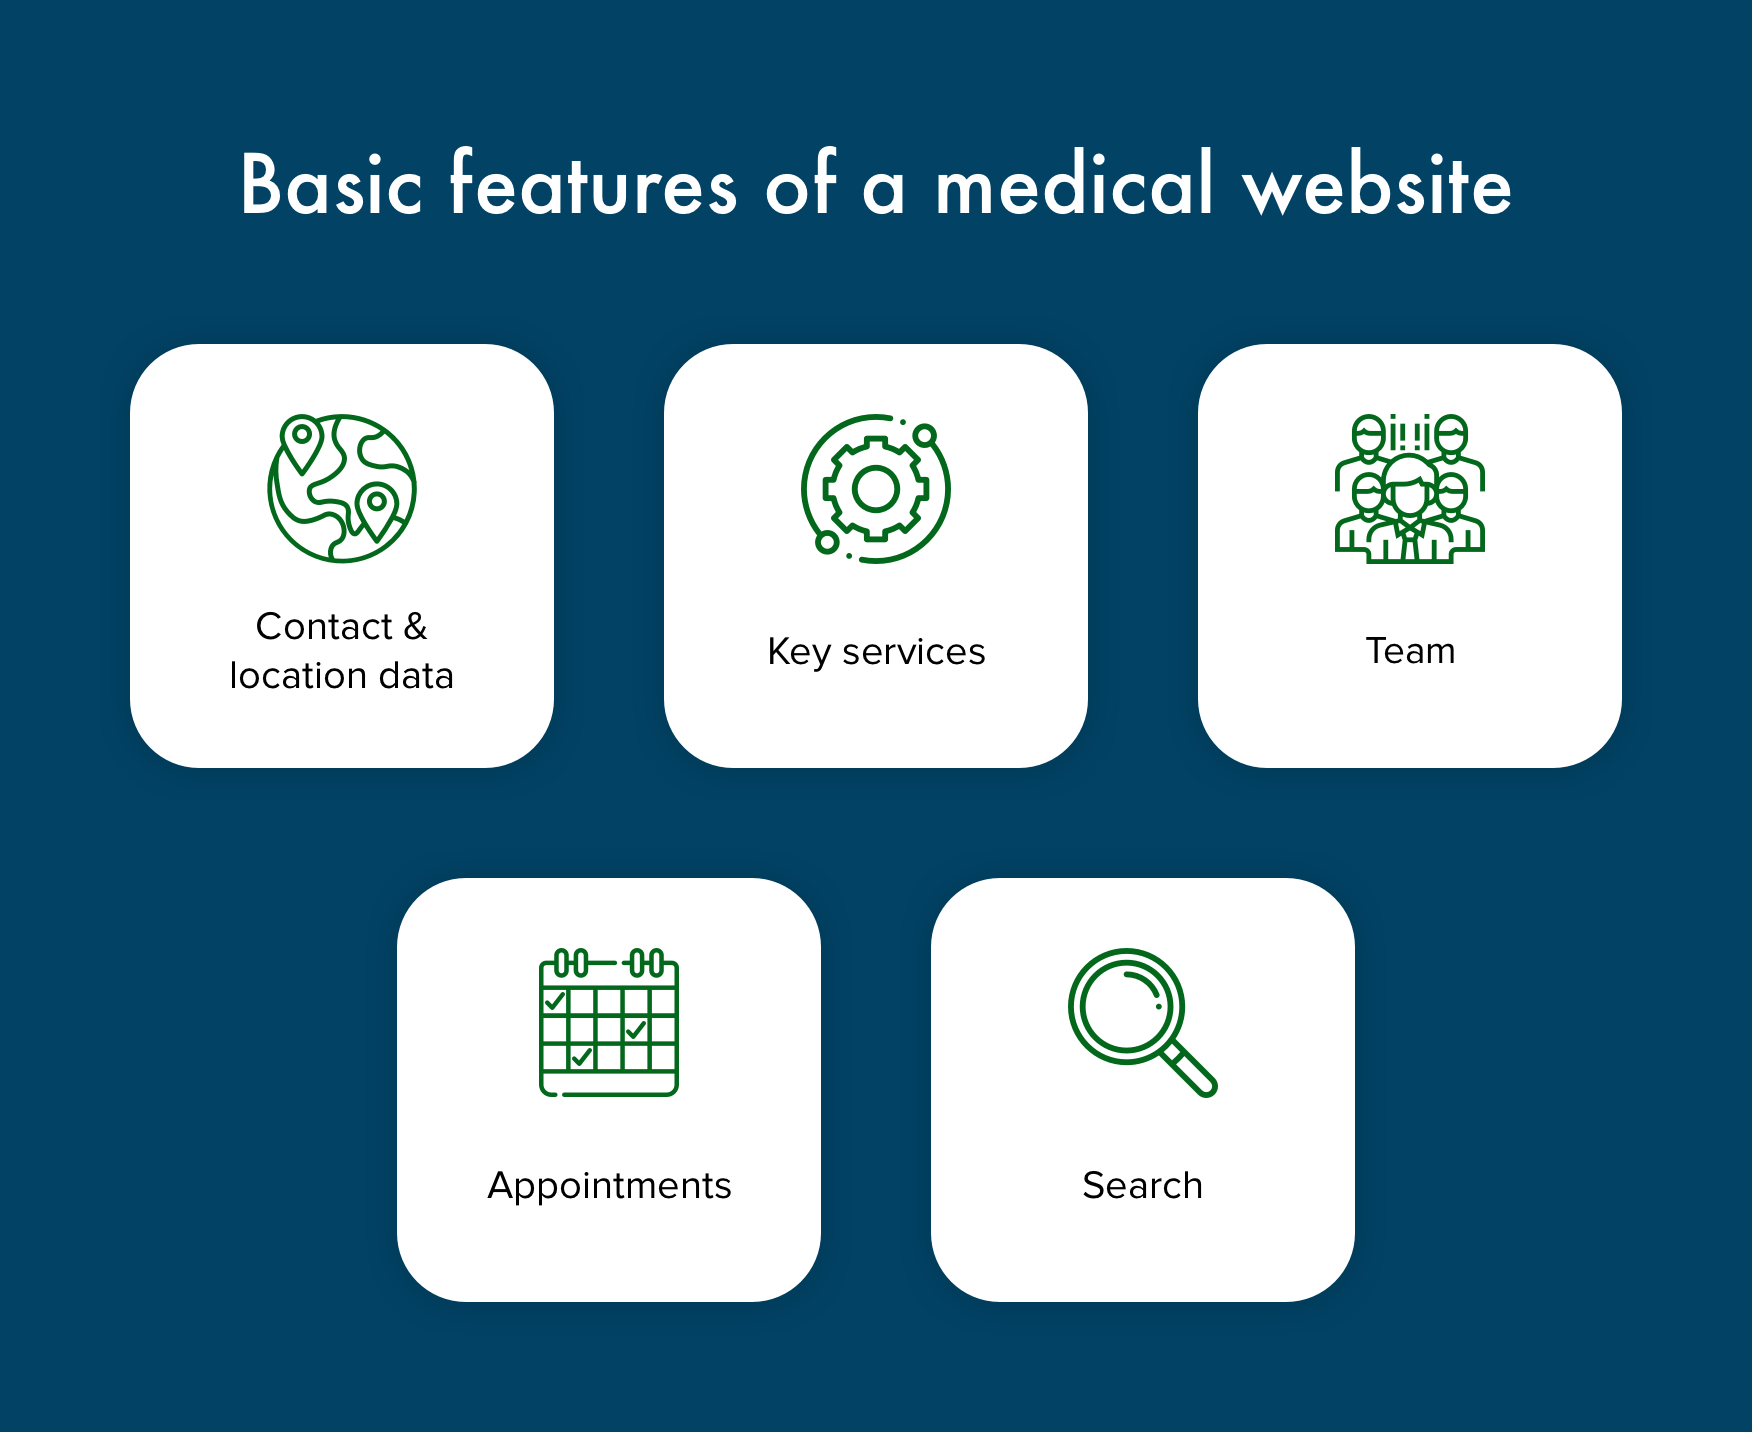 Medical web development: Basic features